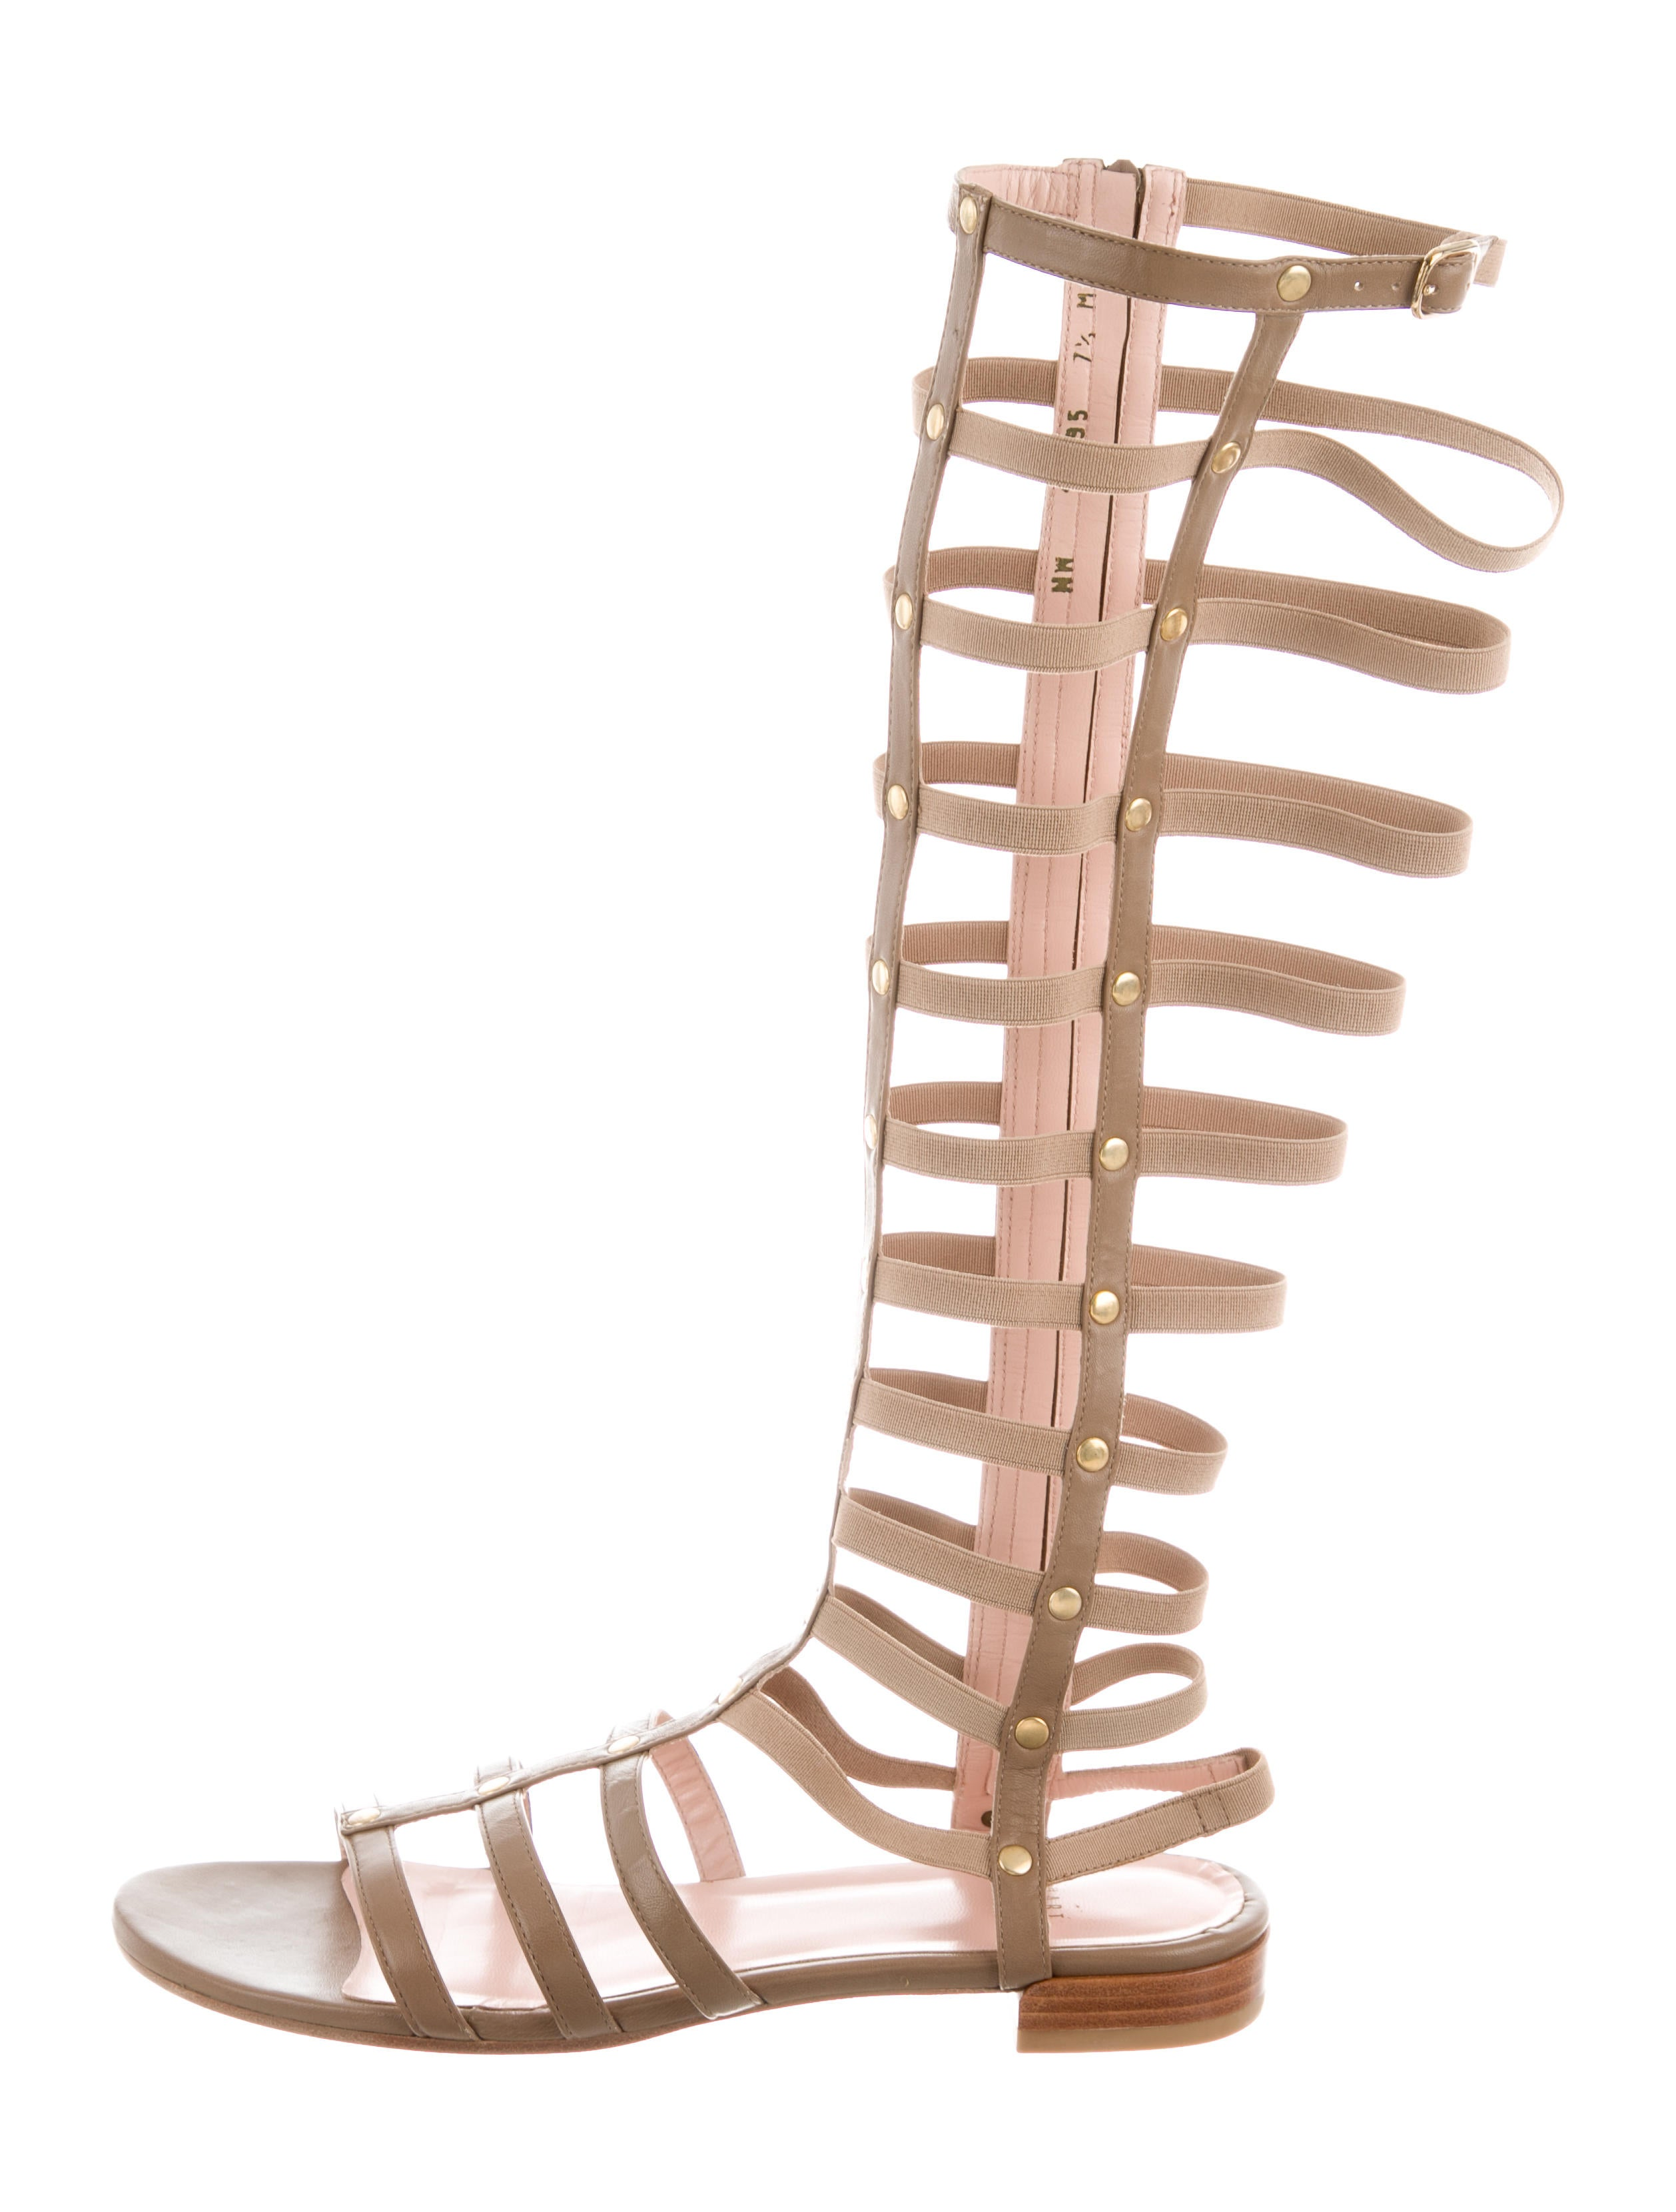 official for sale Stuart Weitzman Leather Gladiator Sandals w/ Tags huge surprise cheap online reliable cheap online xNyFs9